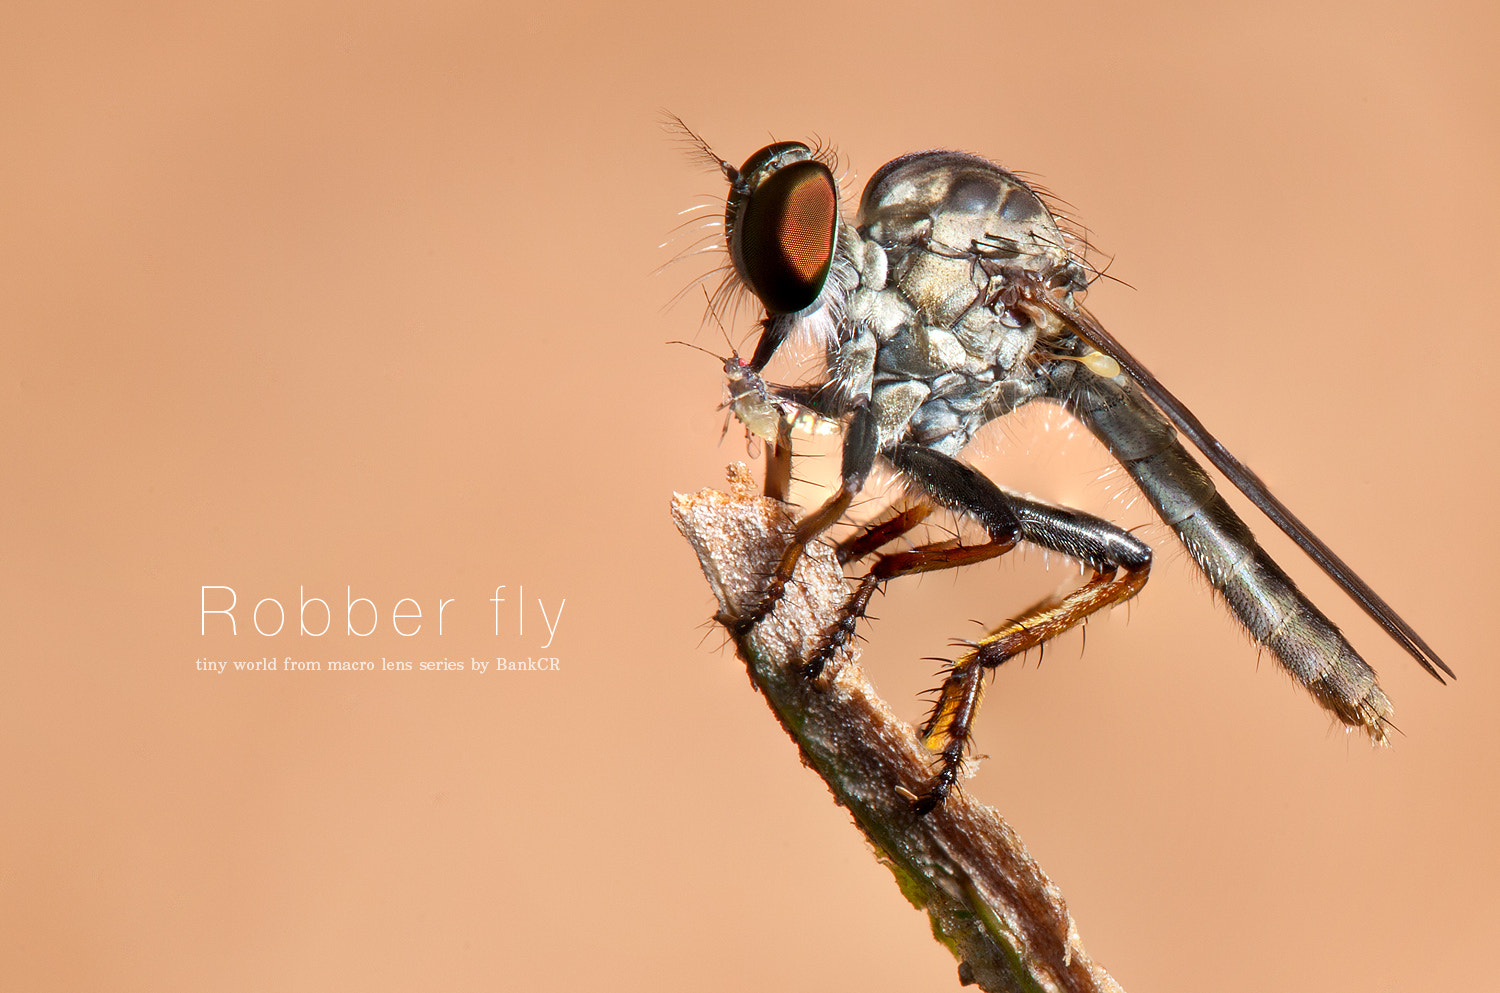 Photograph Robber fly by poneaks sirivetaumnuikit on 500px